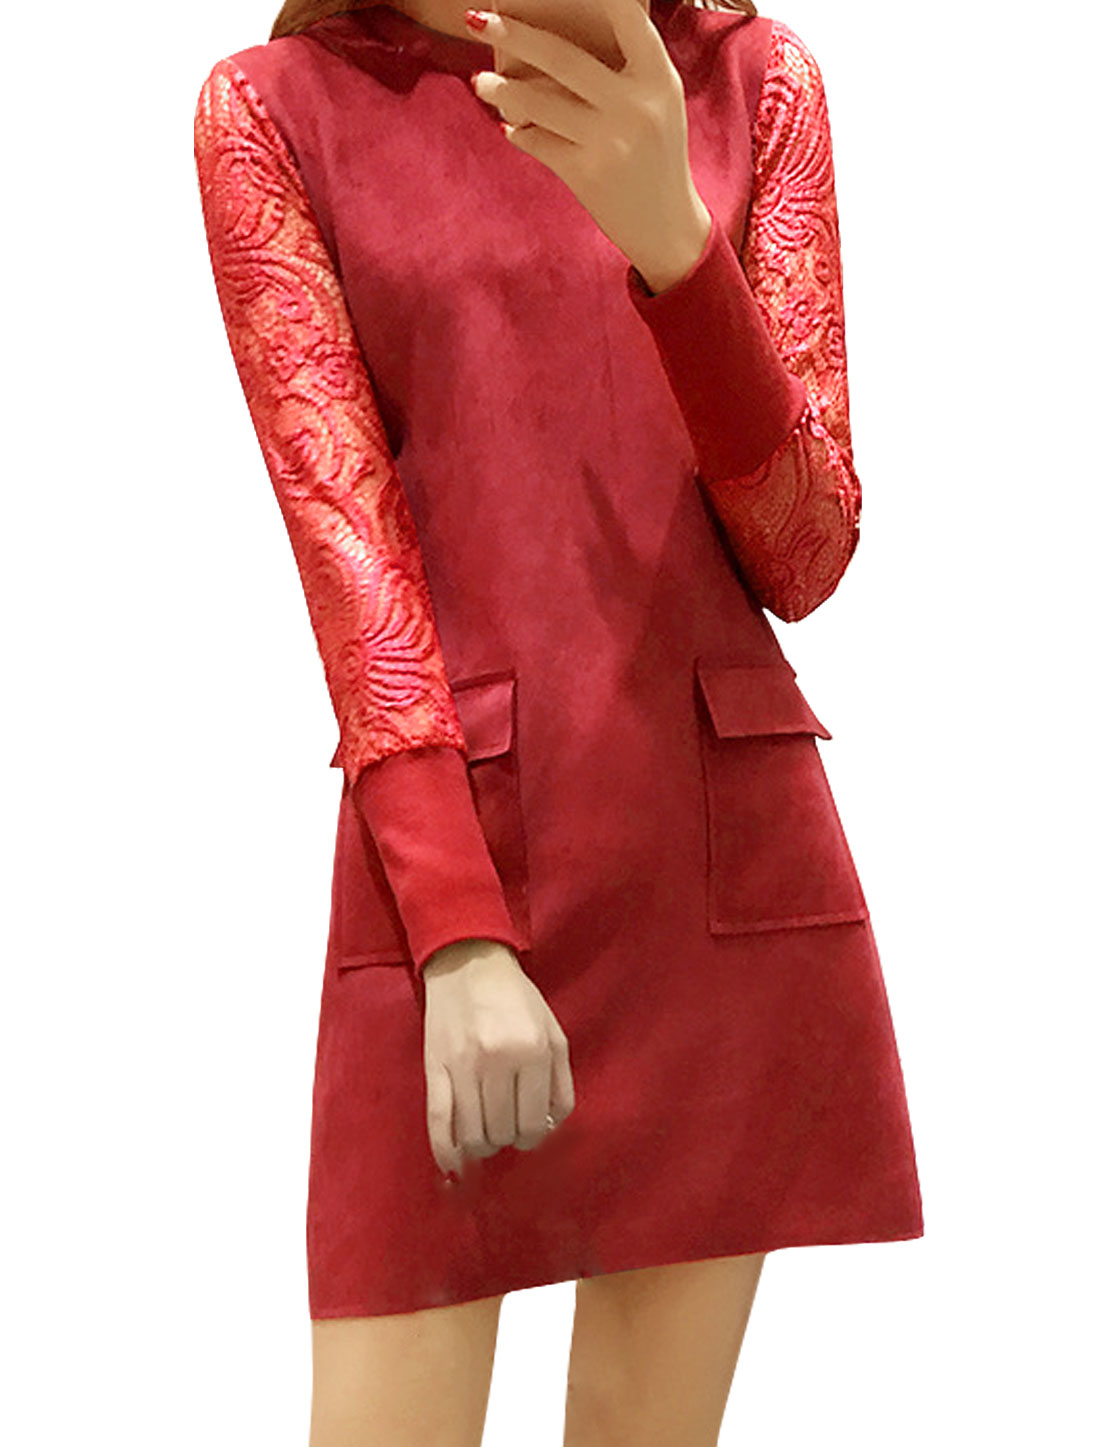 Lady Crew Neck Semi Sheer Sleeves Lace Panel Tunic Dress Red M